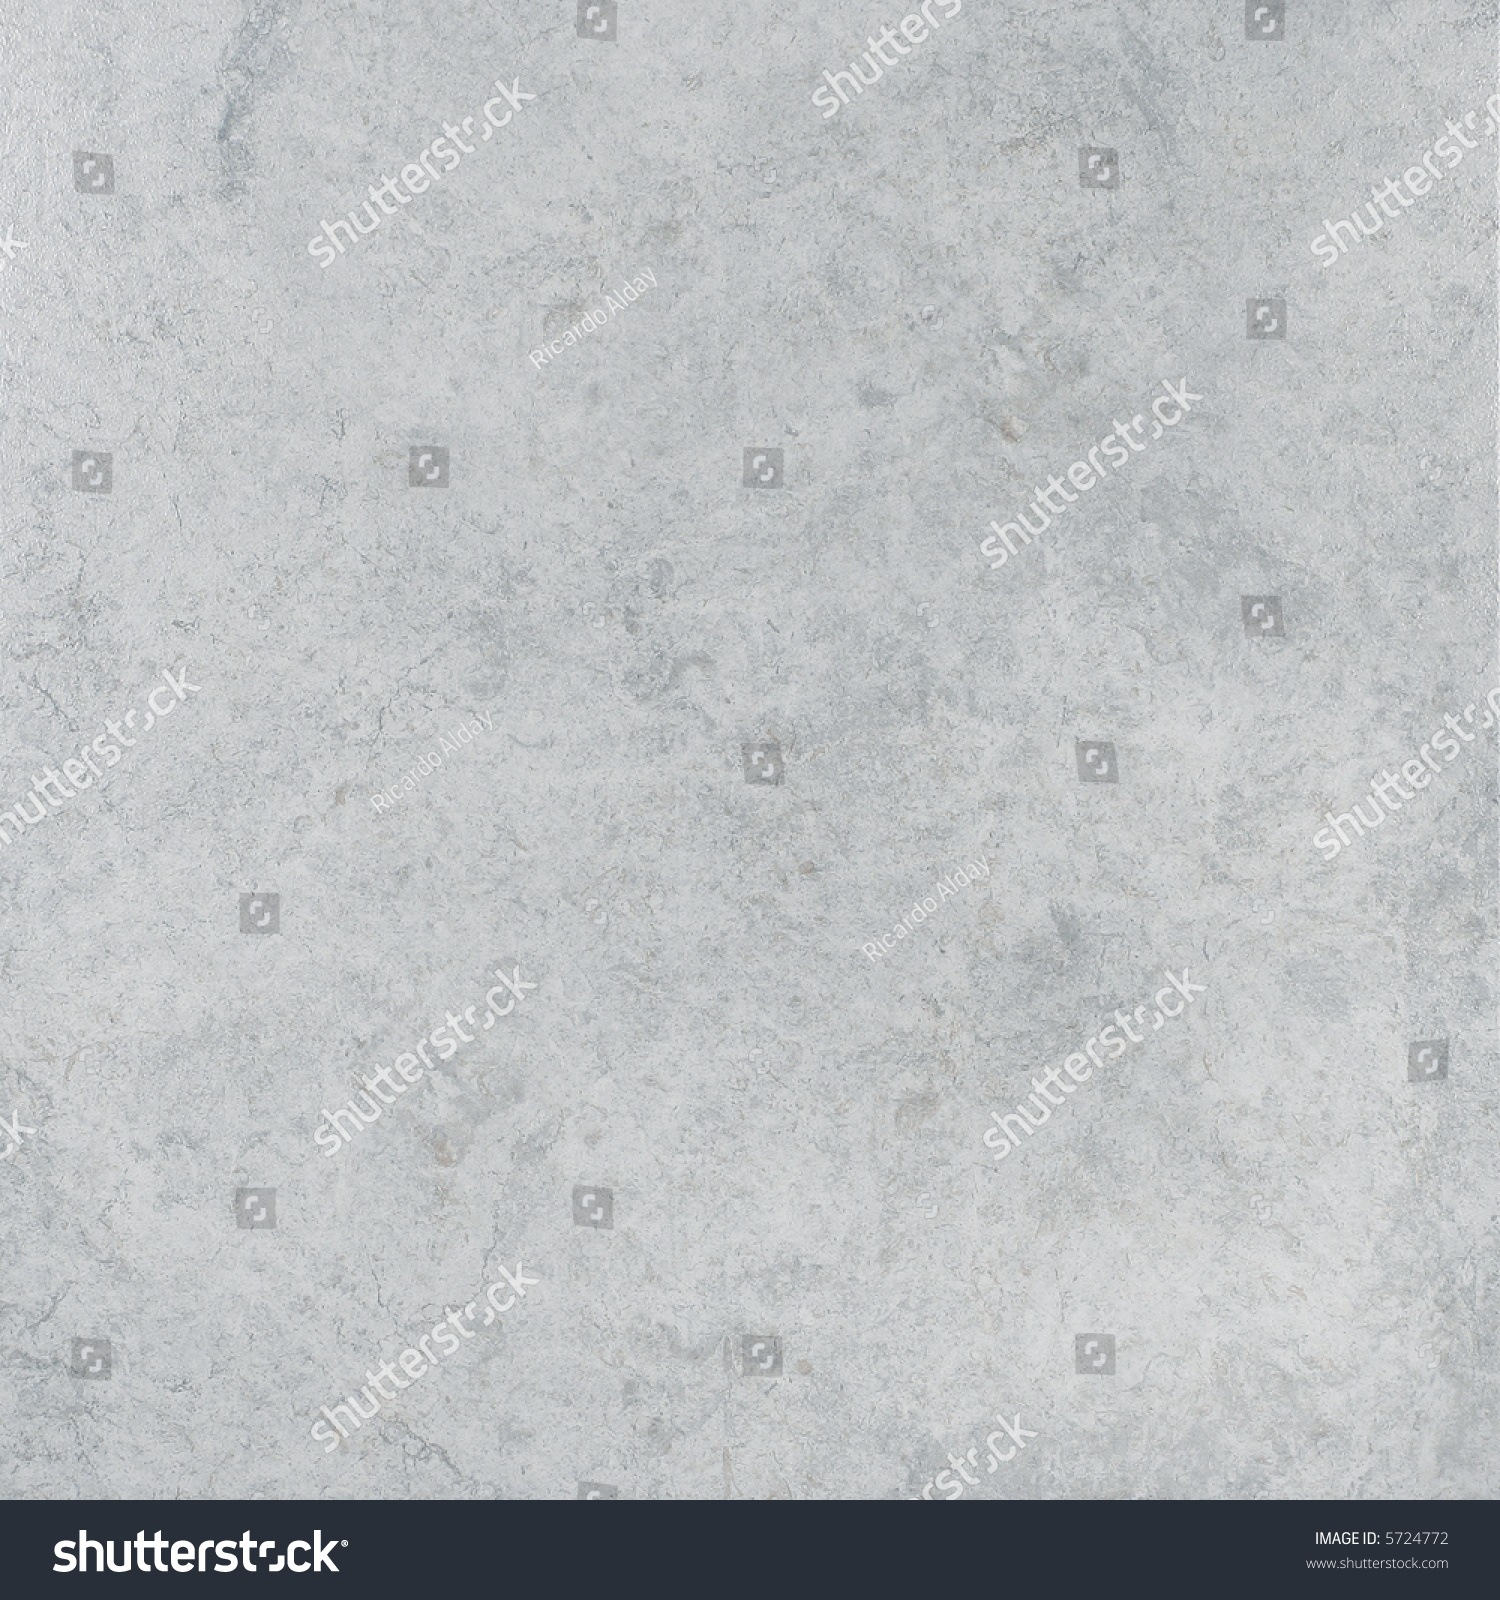 Concrete textured ceramic tile stock photo 5724772 shutterstock concrete textured ceramic tile dailygadgetfo Image collections